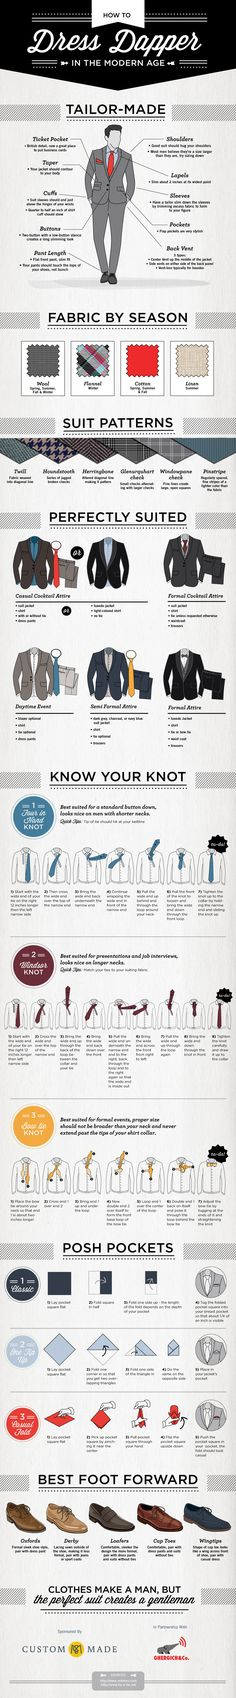 Men's Style: How to dress dapper in the modern age Infographic by CustomMade #infographic